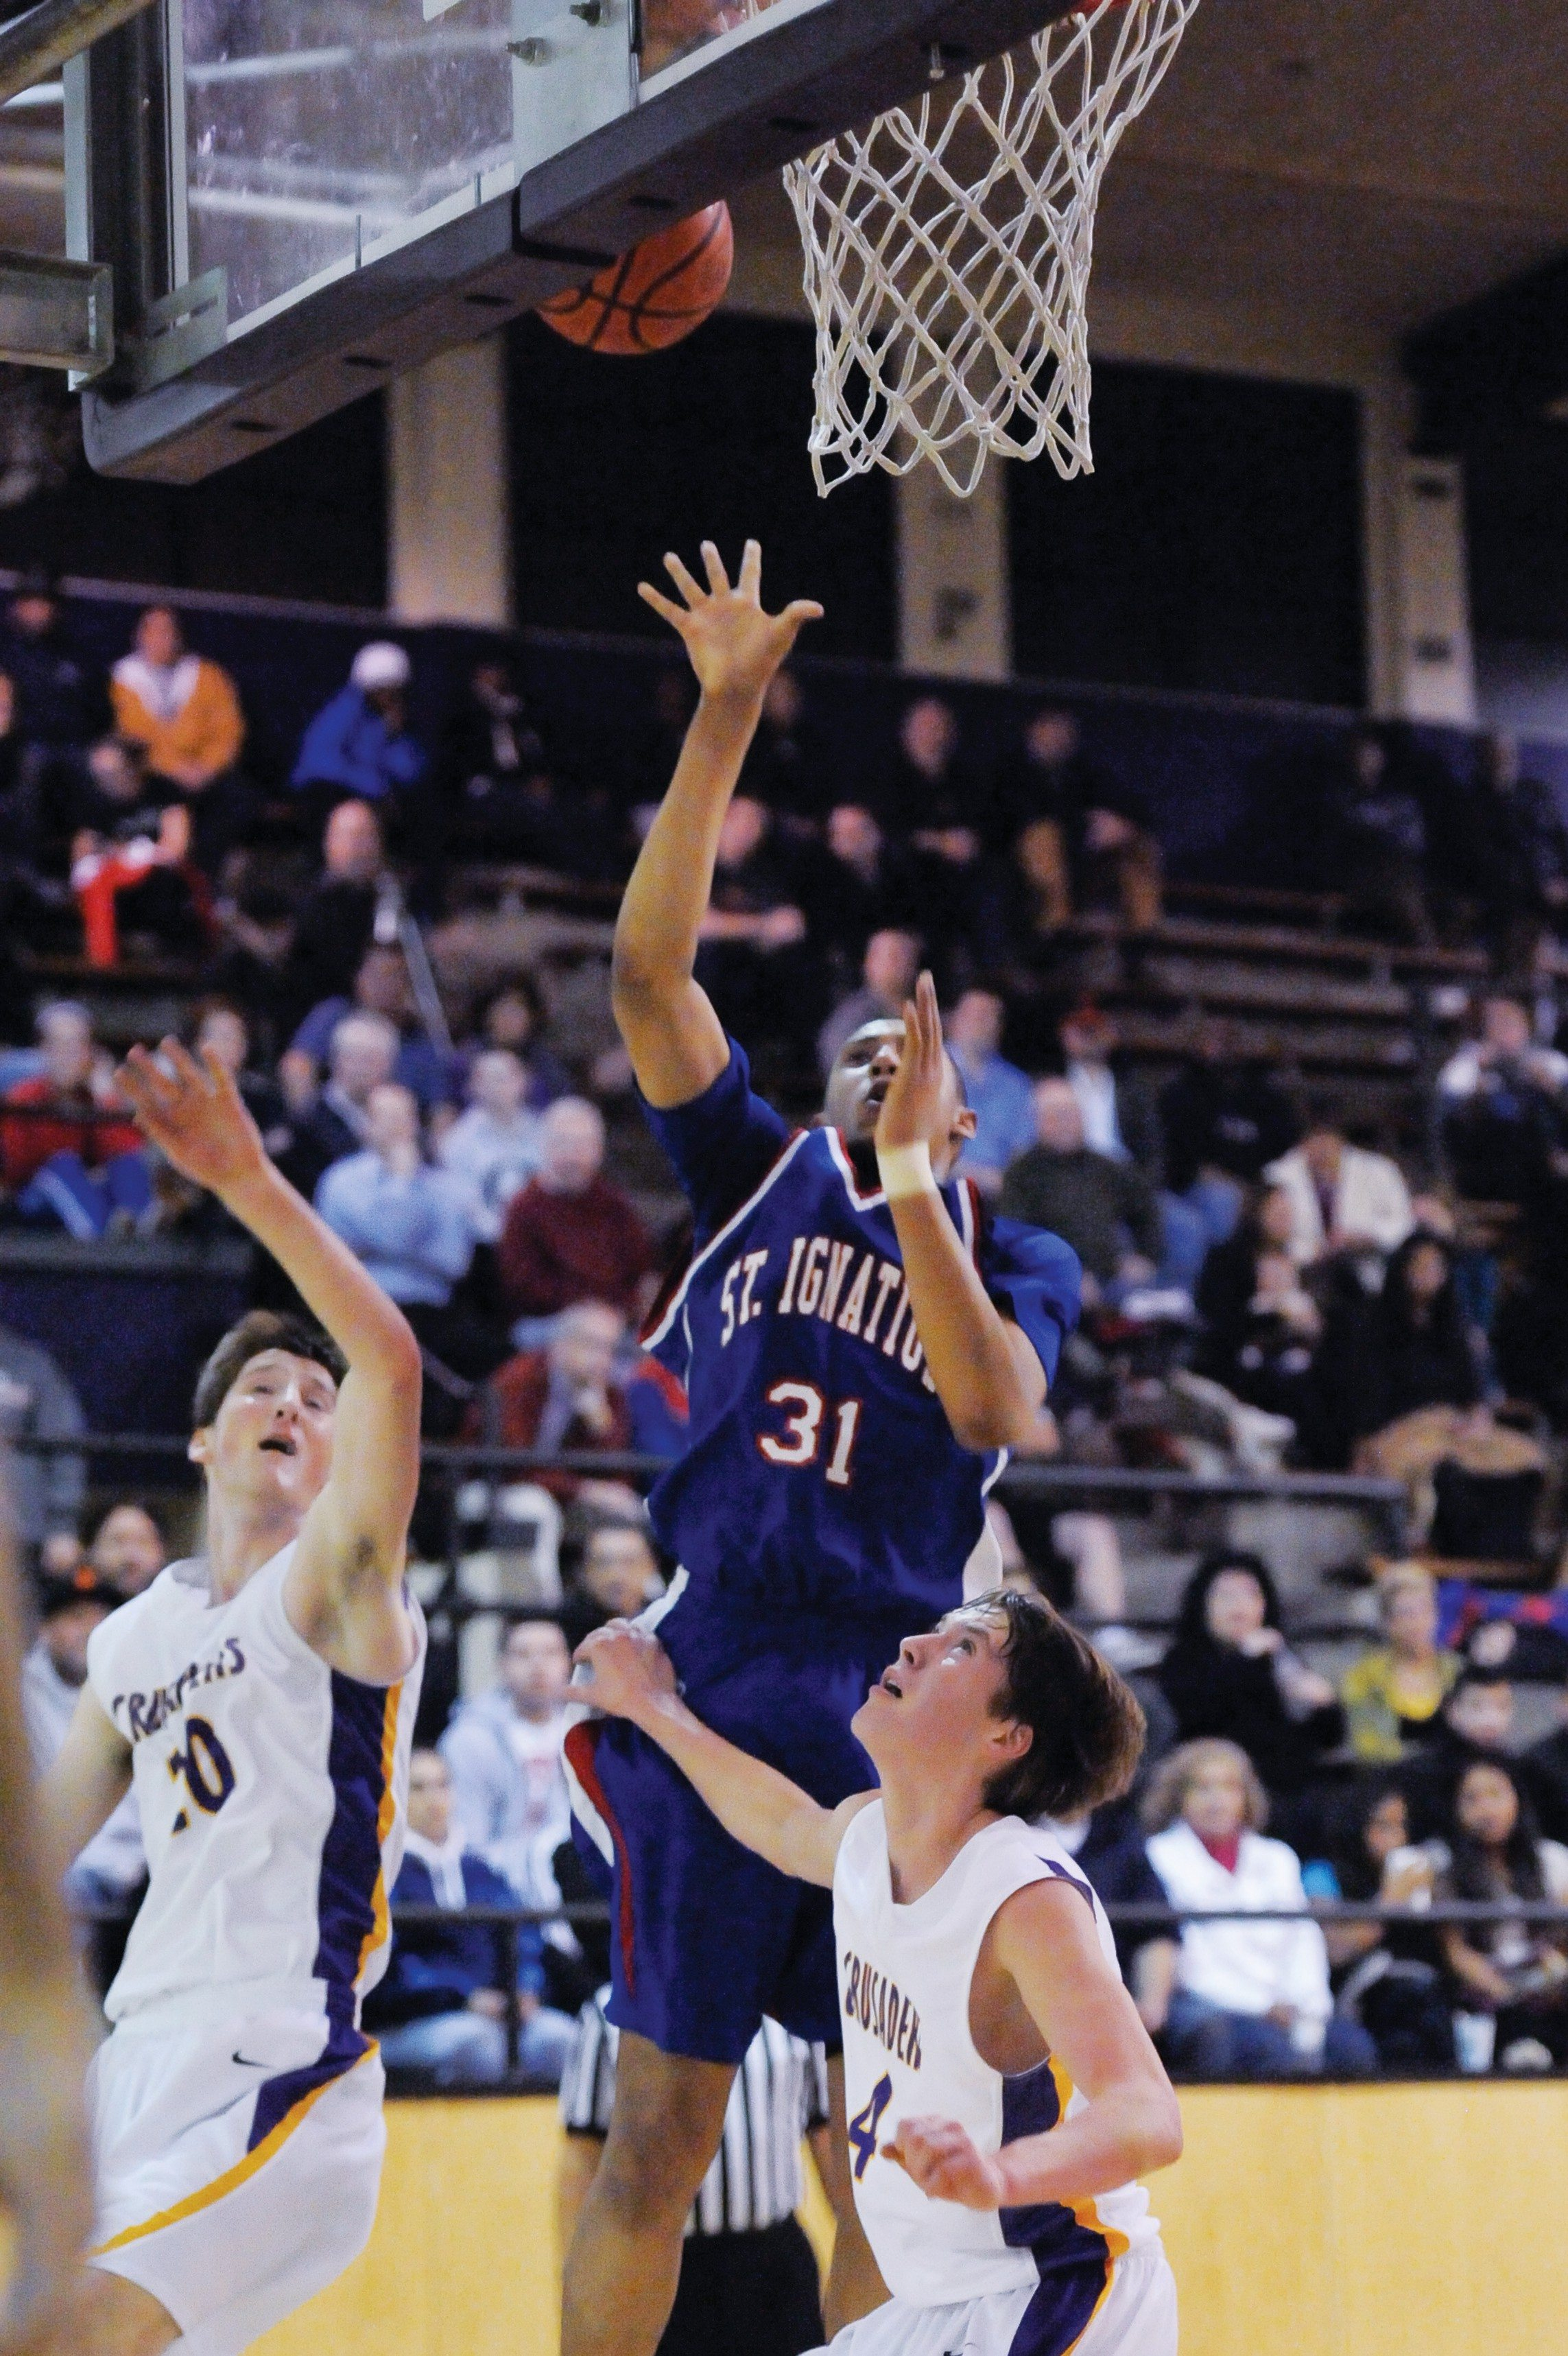 Doug Ko/Special to The ExaminerSt. Ignatius' Stephen Domingo (31) took advantage of his 6-foot-7 frame on Tuesday to score 18 points and pull down 11 rebounds in the Irish's WCAL victory against Riordan.